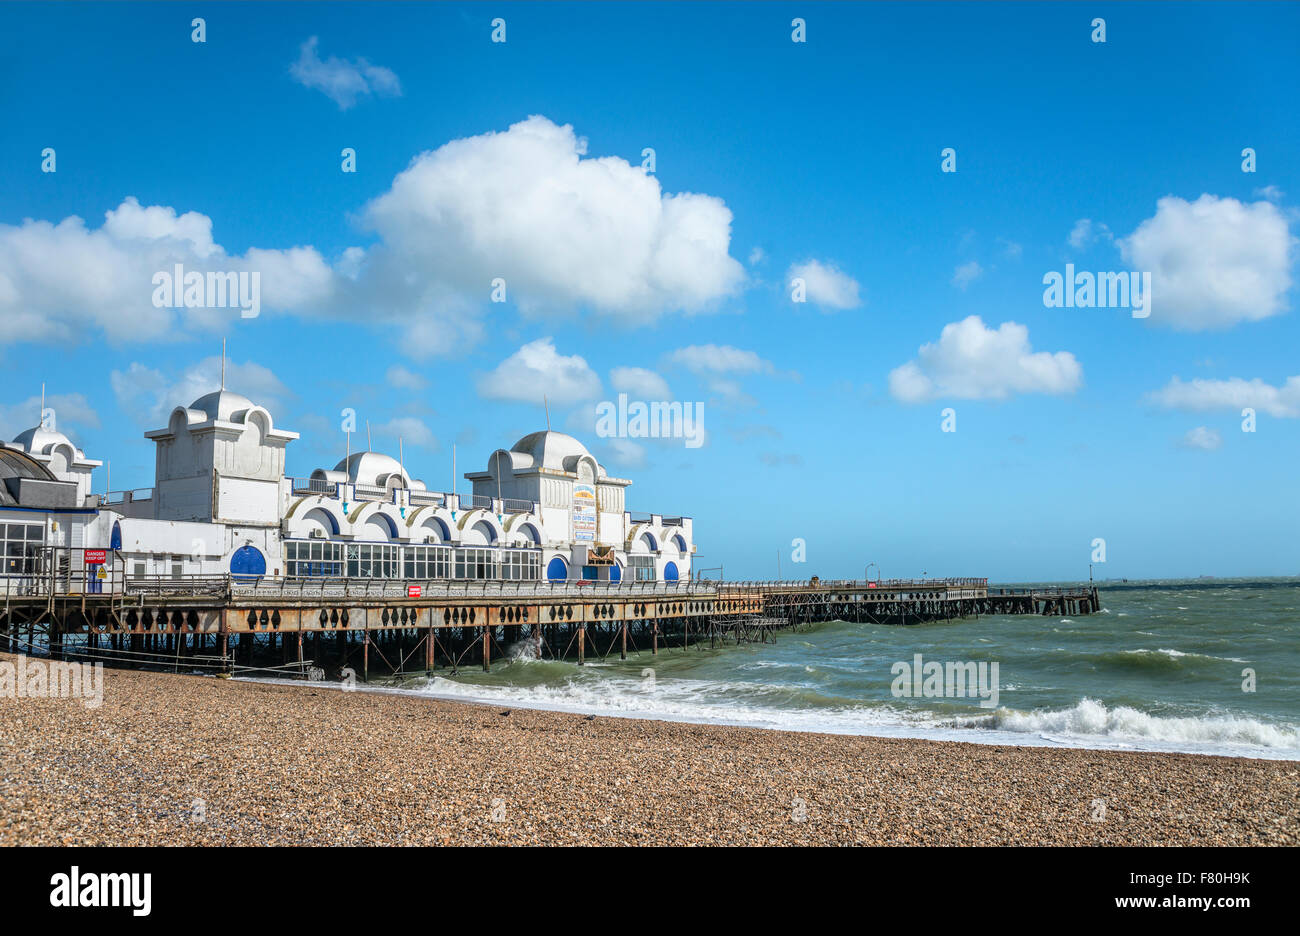 Historical South Parade Pier, Portsmouth, Hampshire, England, United Kingdom - Stock Image